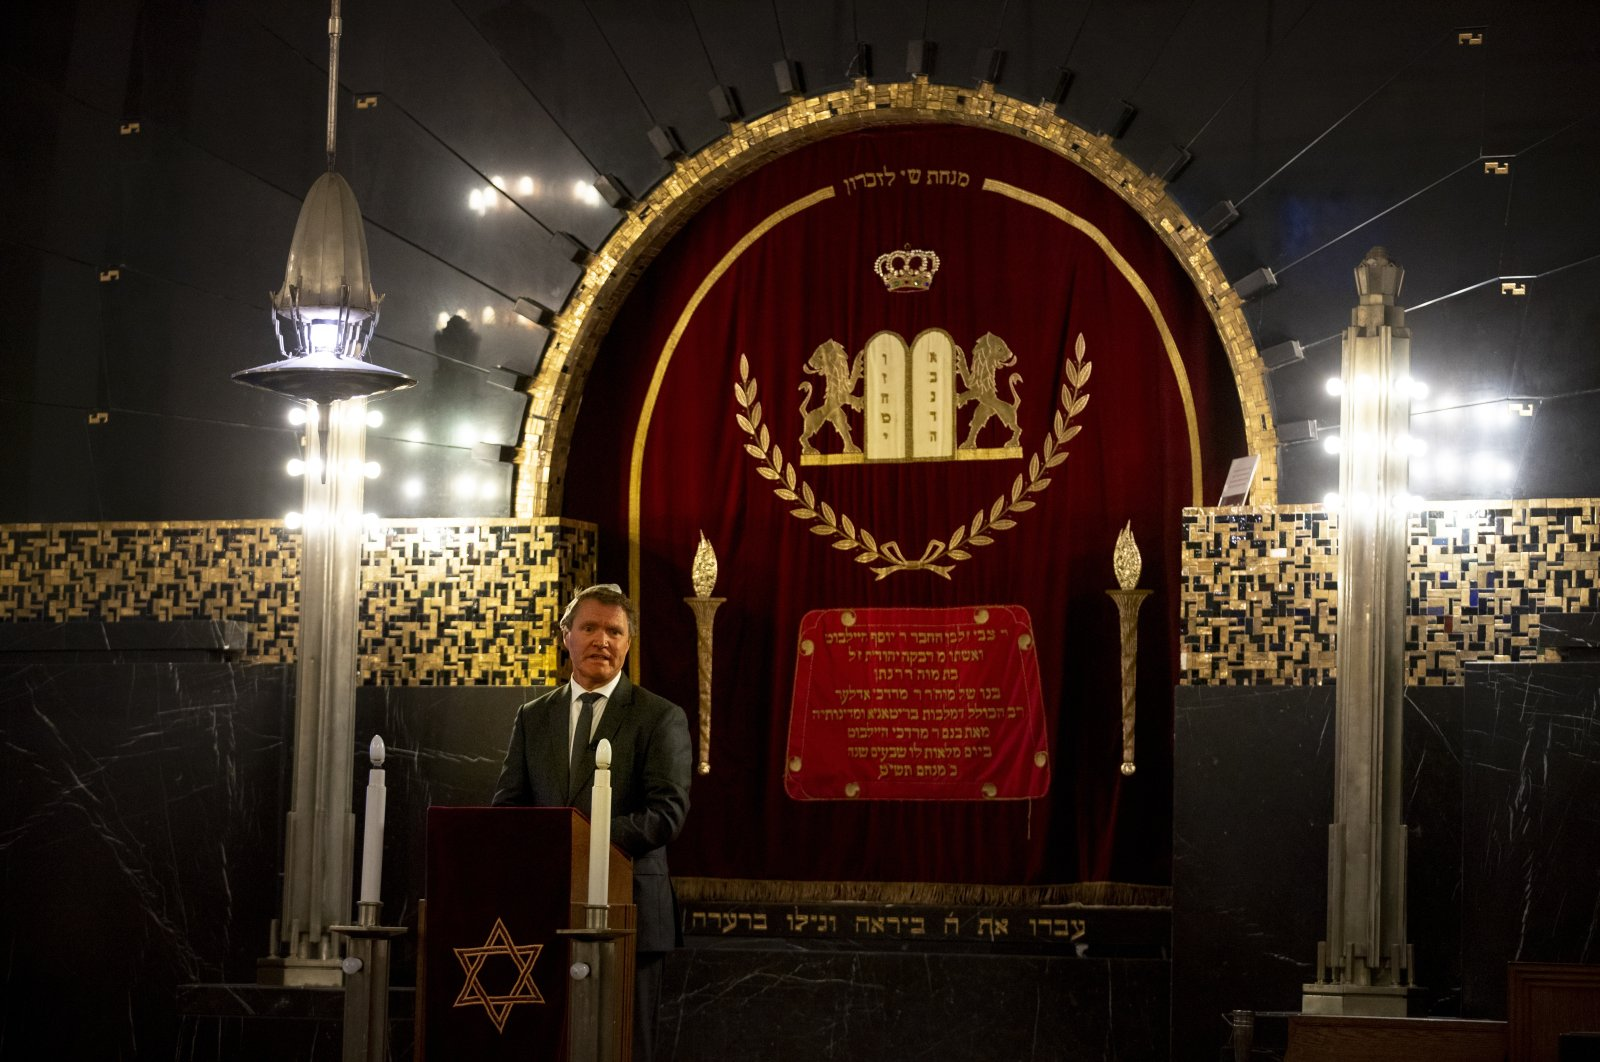 Rene de Reuver, speaking on behalf of the General Synod of the Protestant Church in the Netherlands, reads a statement at the Rav Aron Schuster Synagogue in Amsterdam, Netherlands, Nov. 8, 2020. (AP Photo)